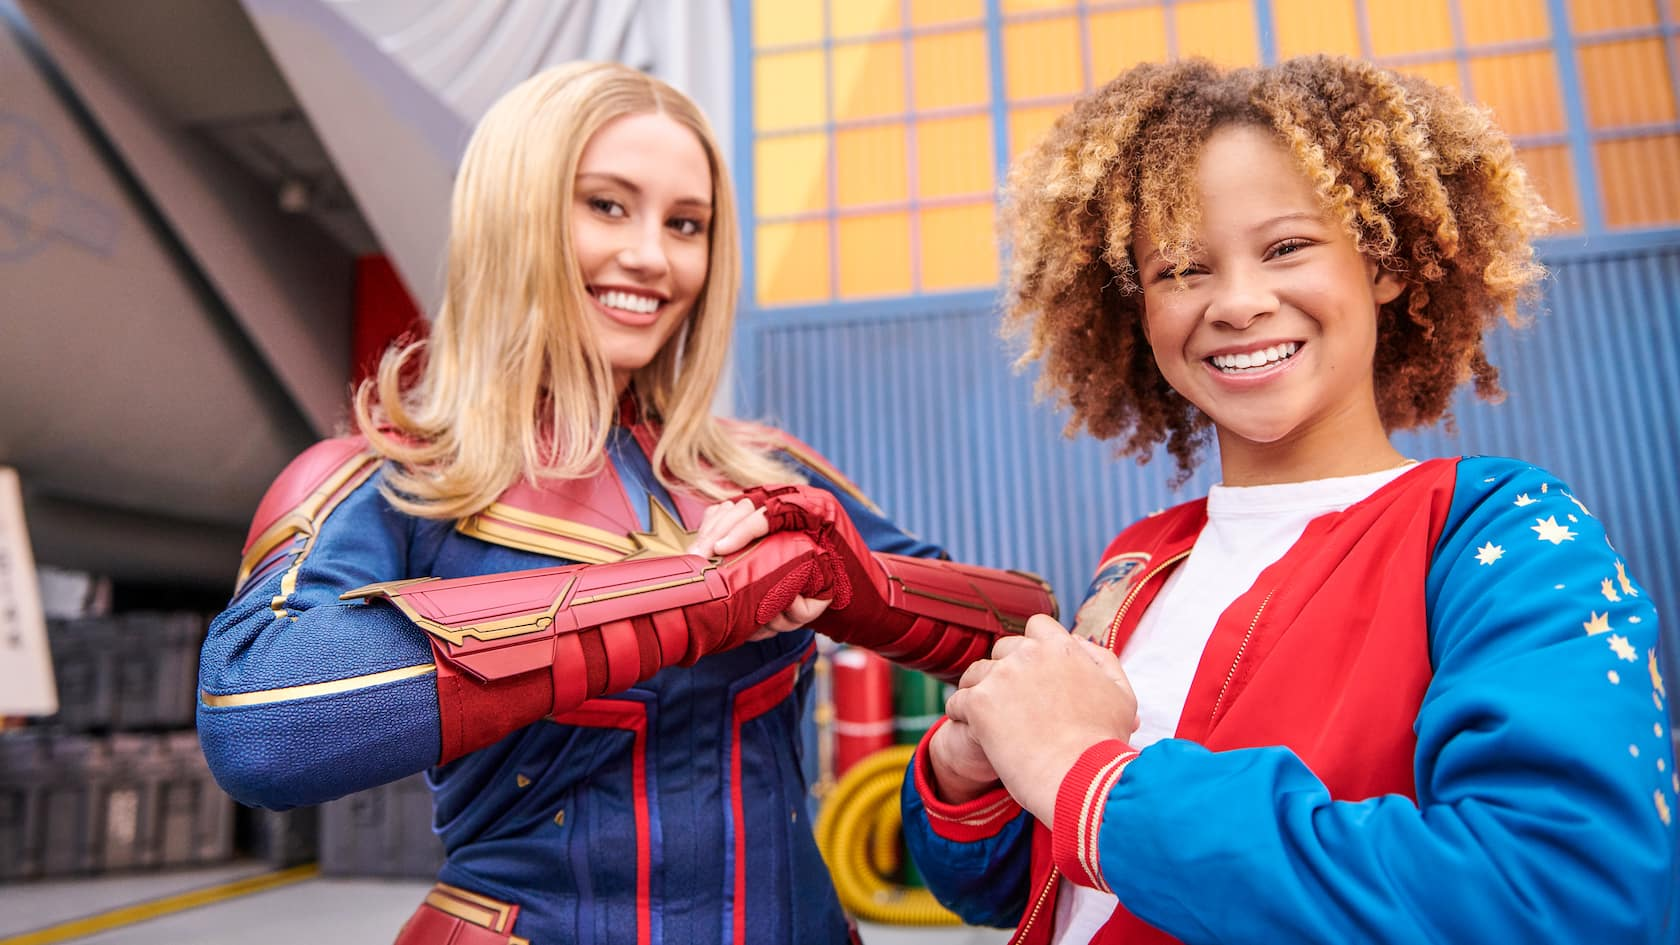 Meet Captain Marvel At California Adventure Disneyland Resort Captain marvel is a believer in truth and justice but also fights between the aggressiveness and quick tempered character that is within her. meet captain marvel at california